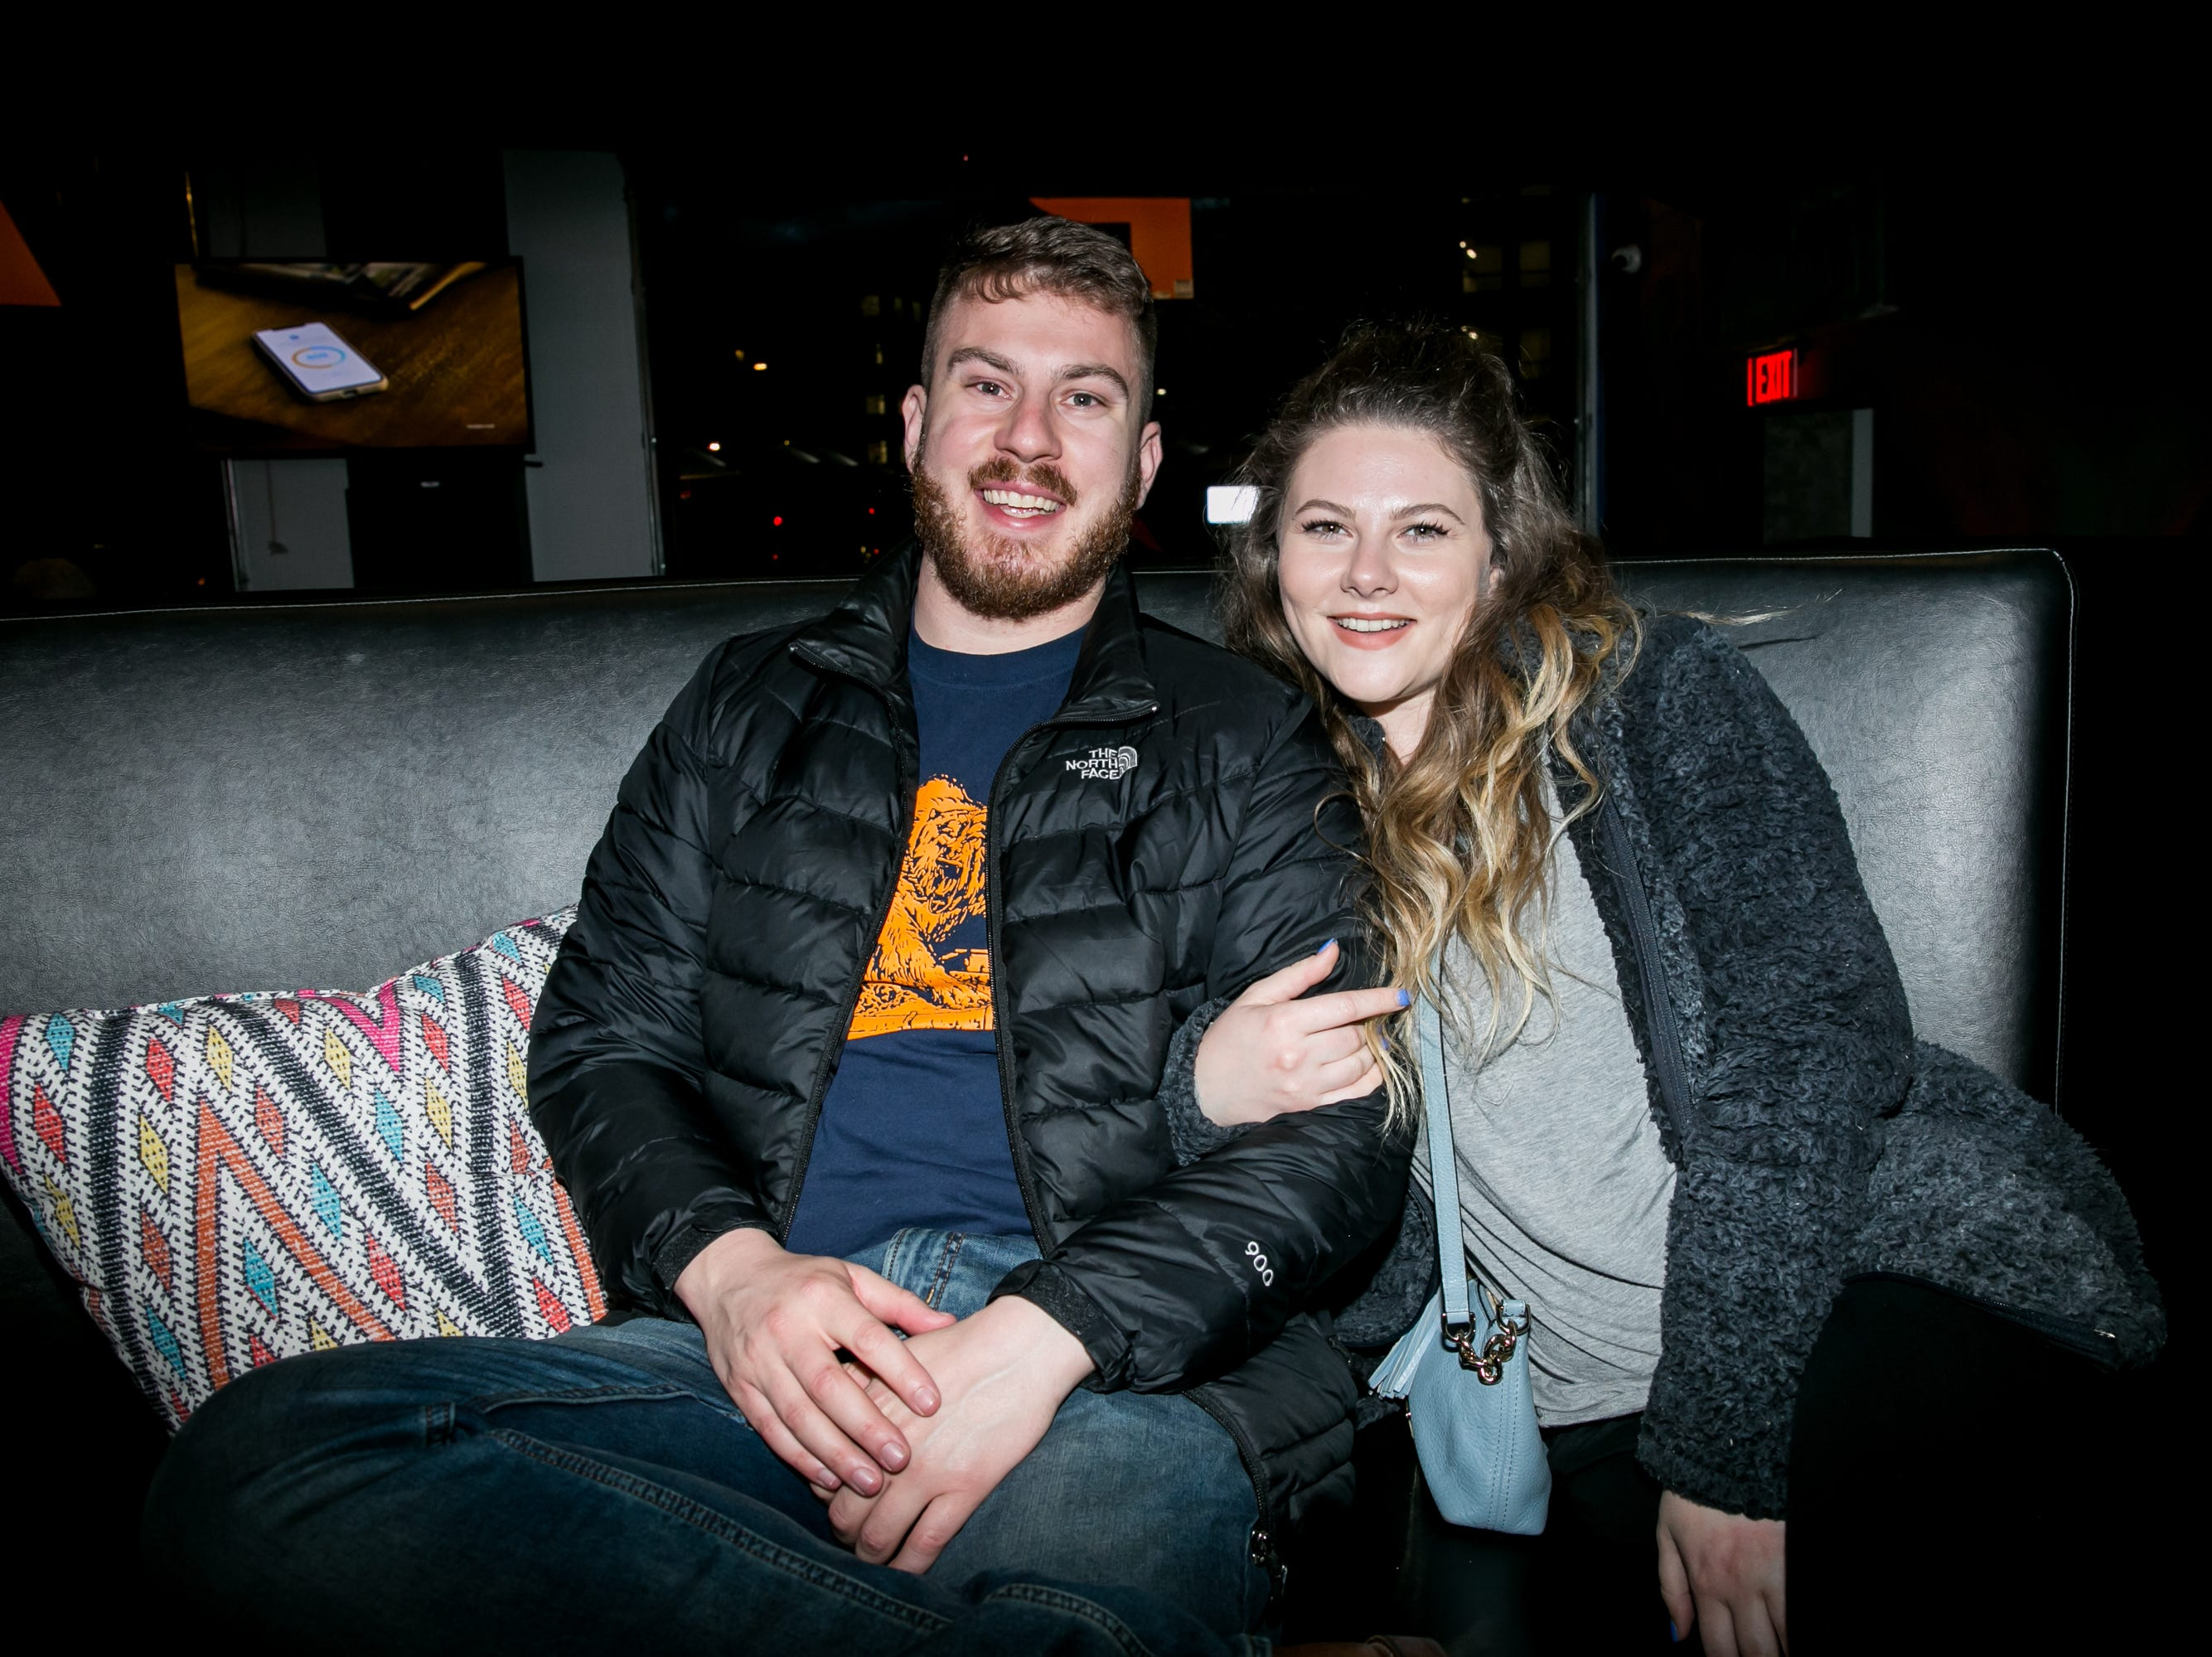 This couple enjoys the festivities during Paz Cantina's Super Bowl Watch Party on Feb. 3, 2019.